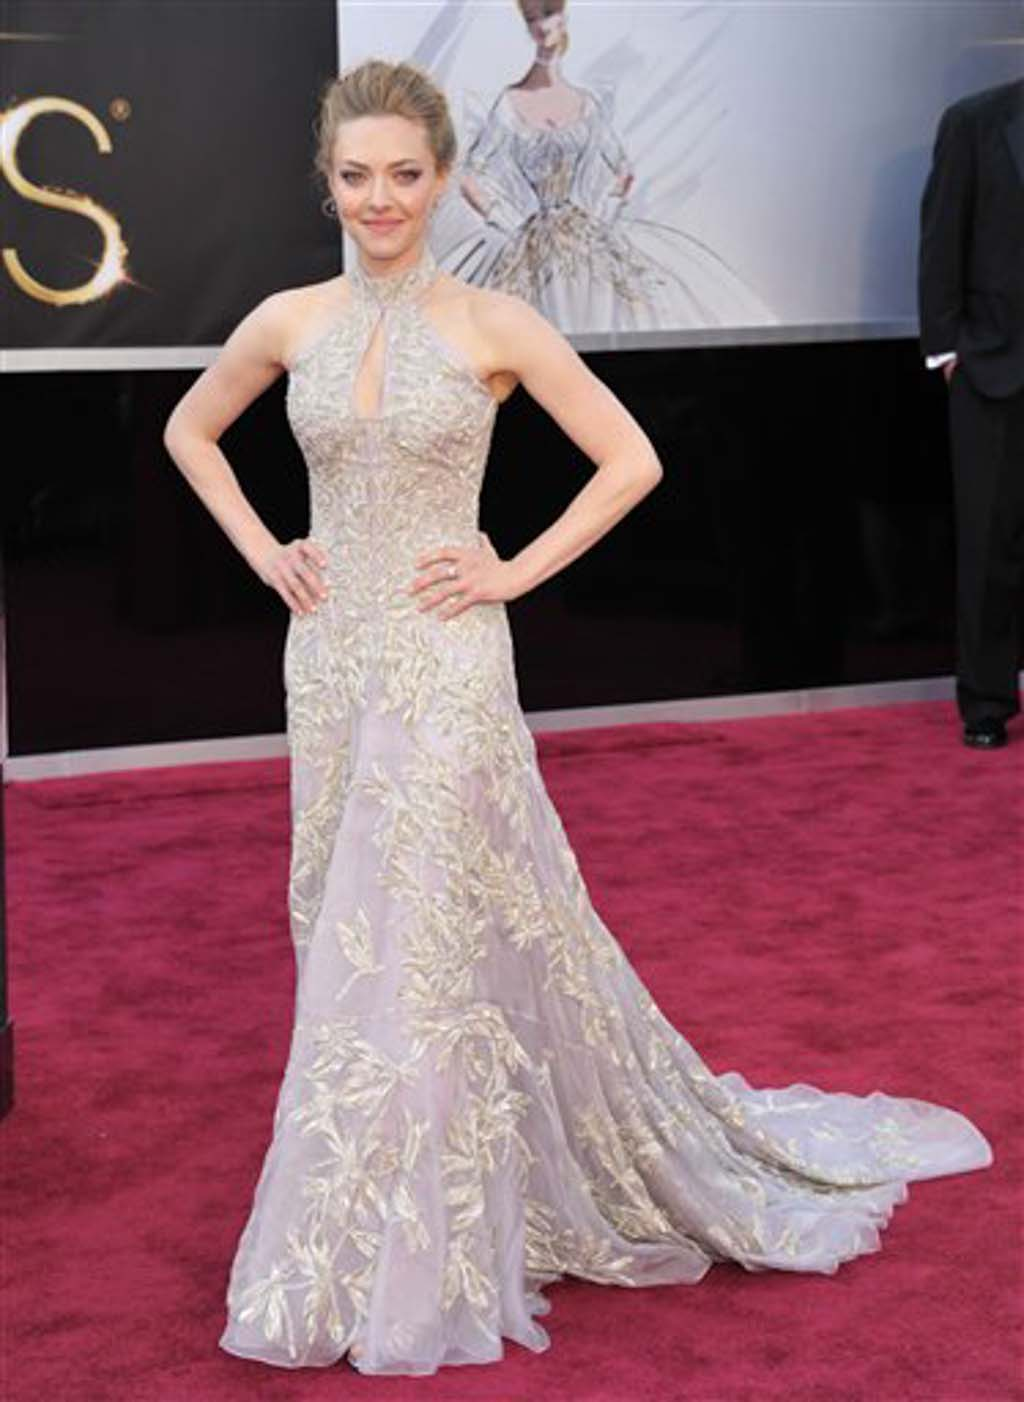 2013 Oscars red carpet: Who wore what to the 85th Academy Awards